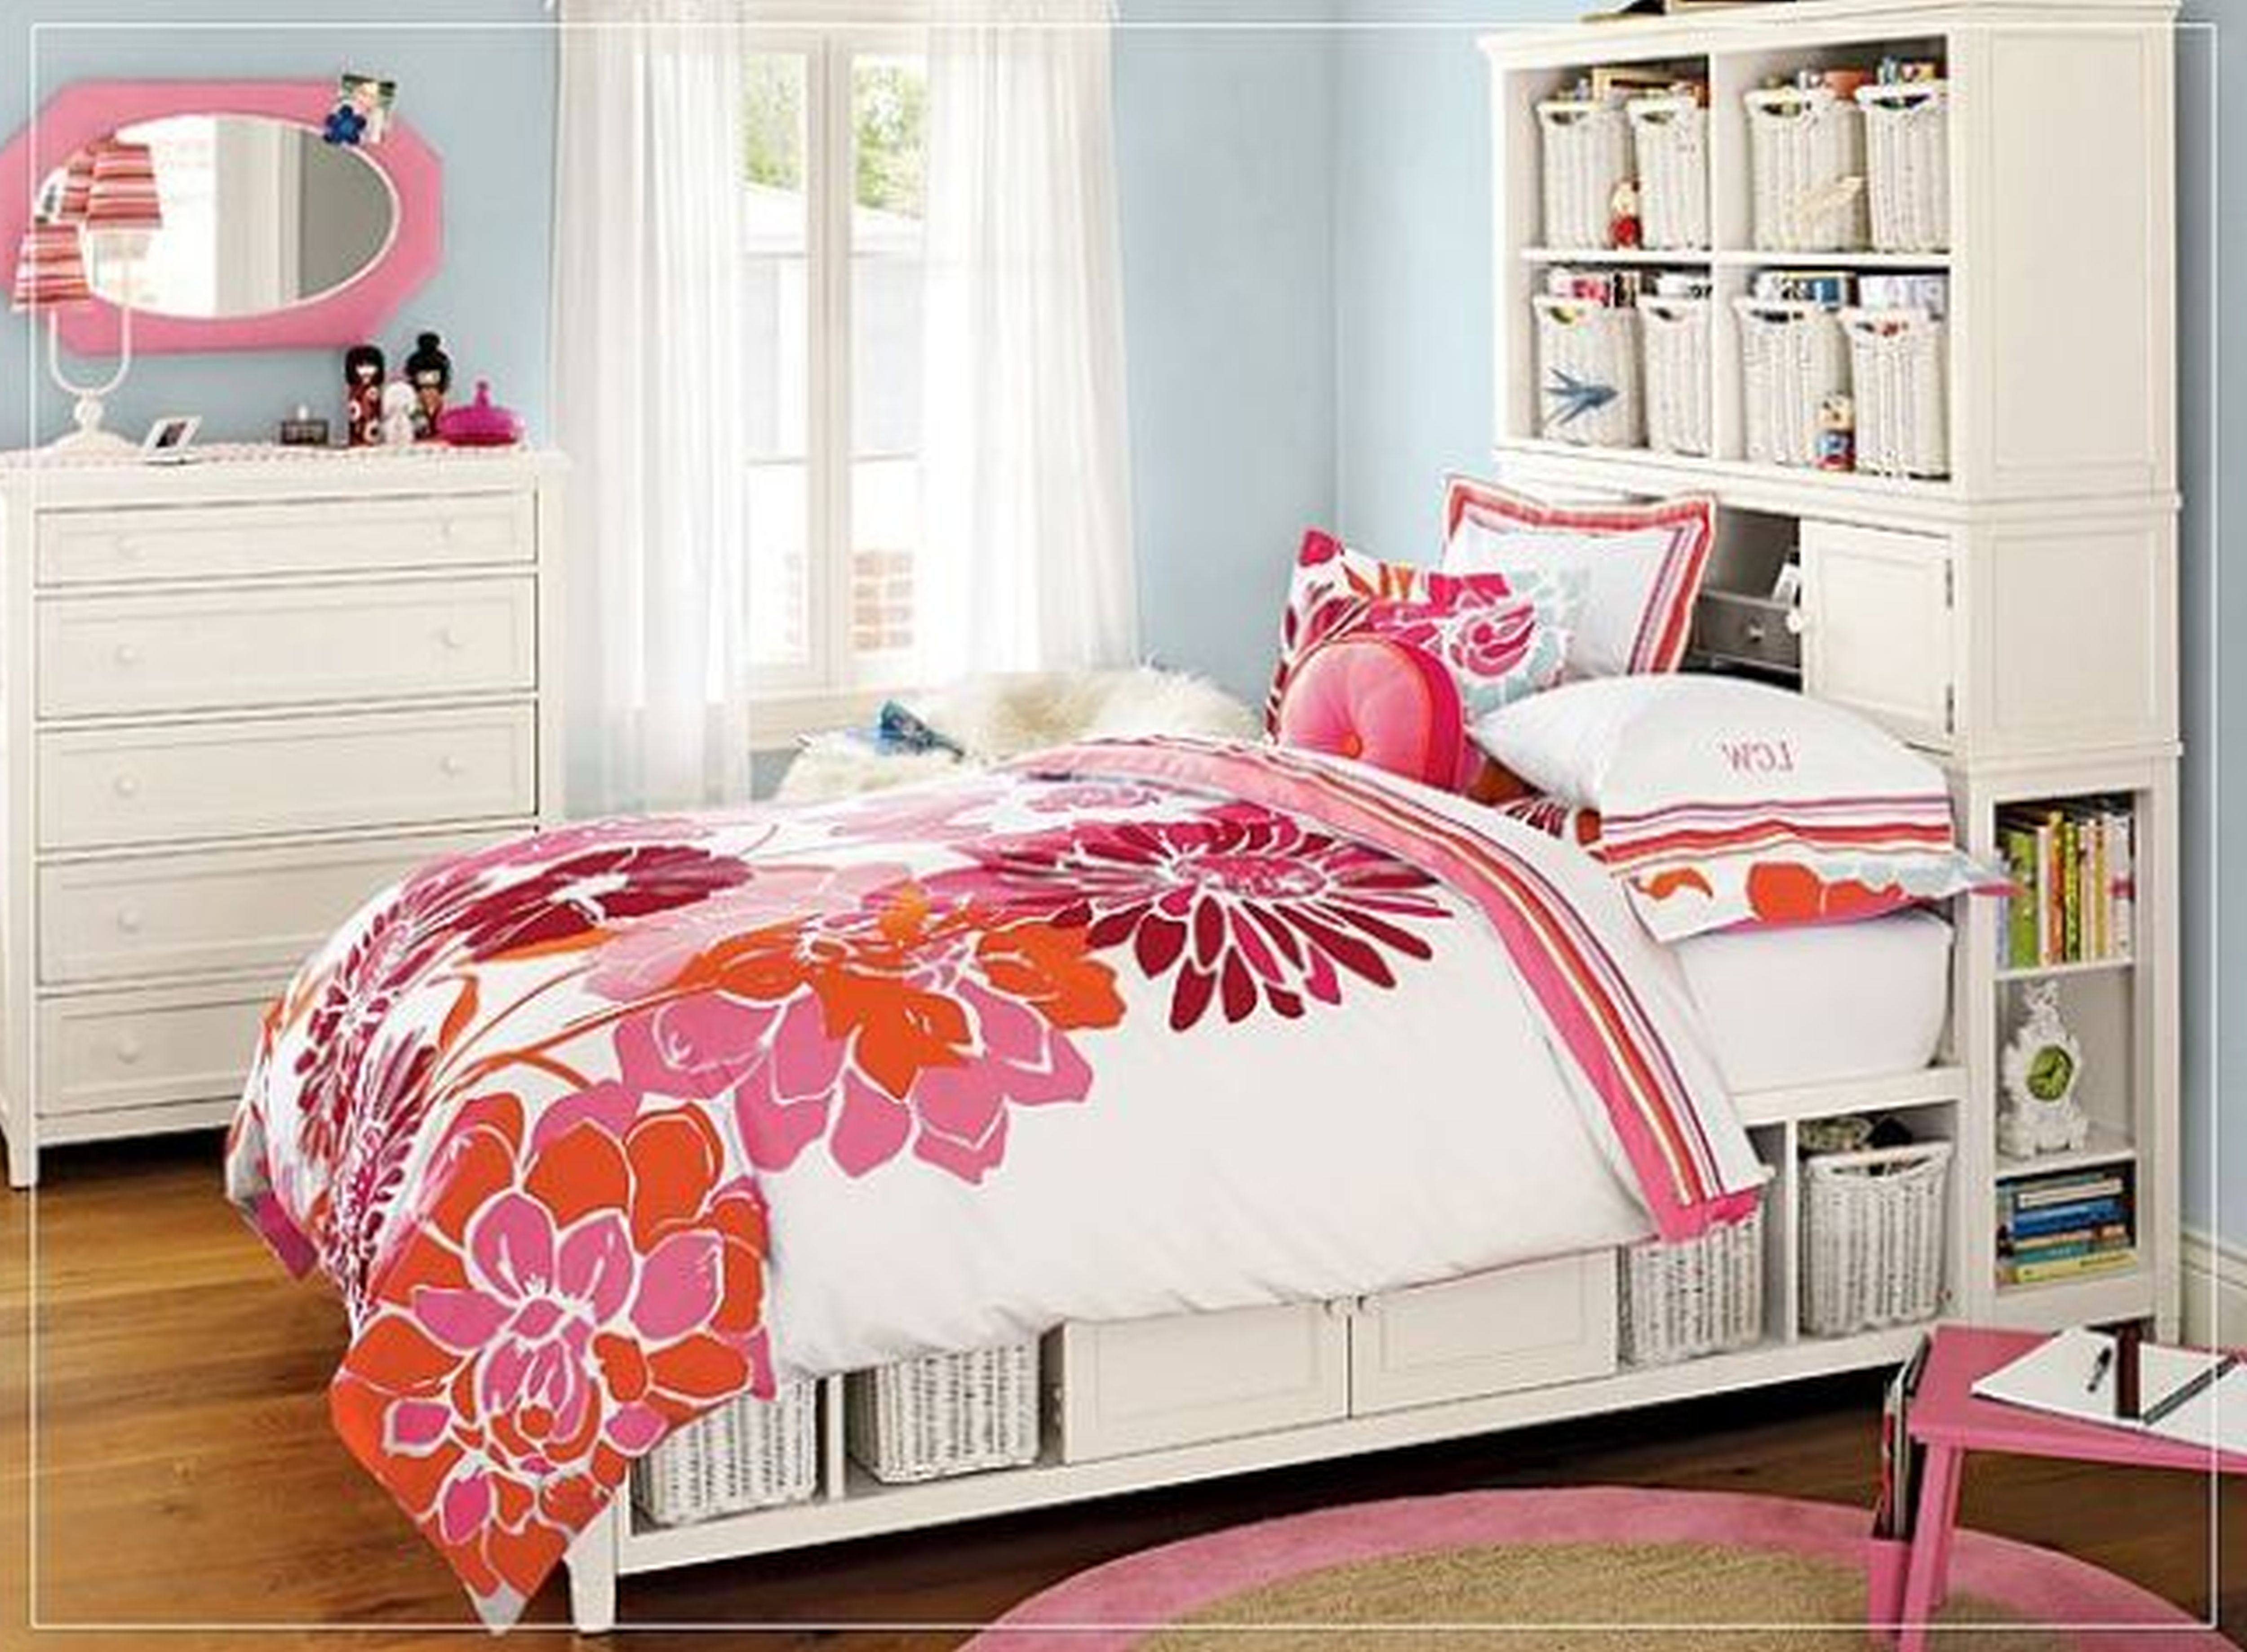 Girlsu bedroom style amazing bedrooms bedrooms and white cabinets